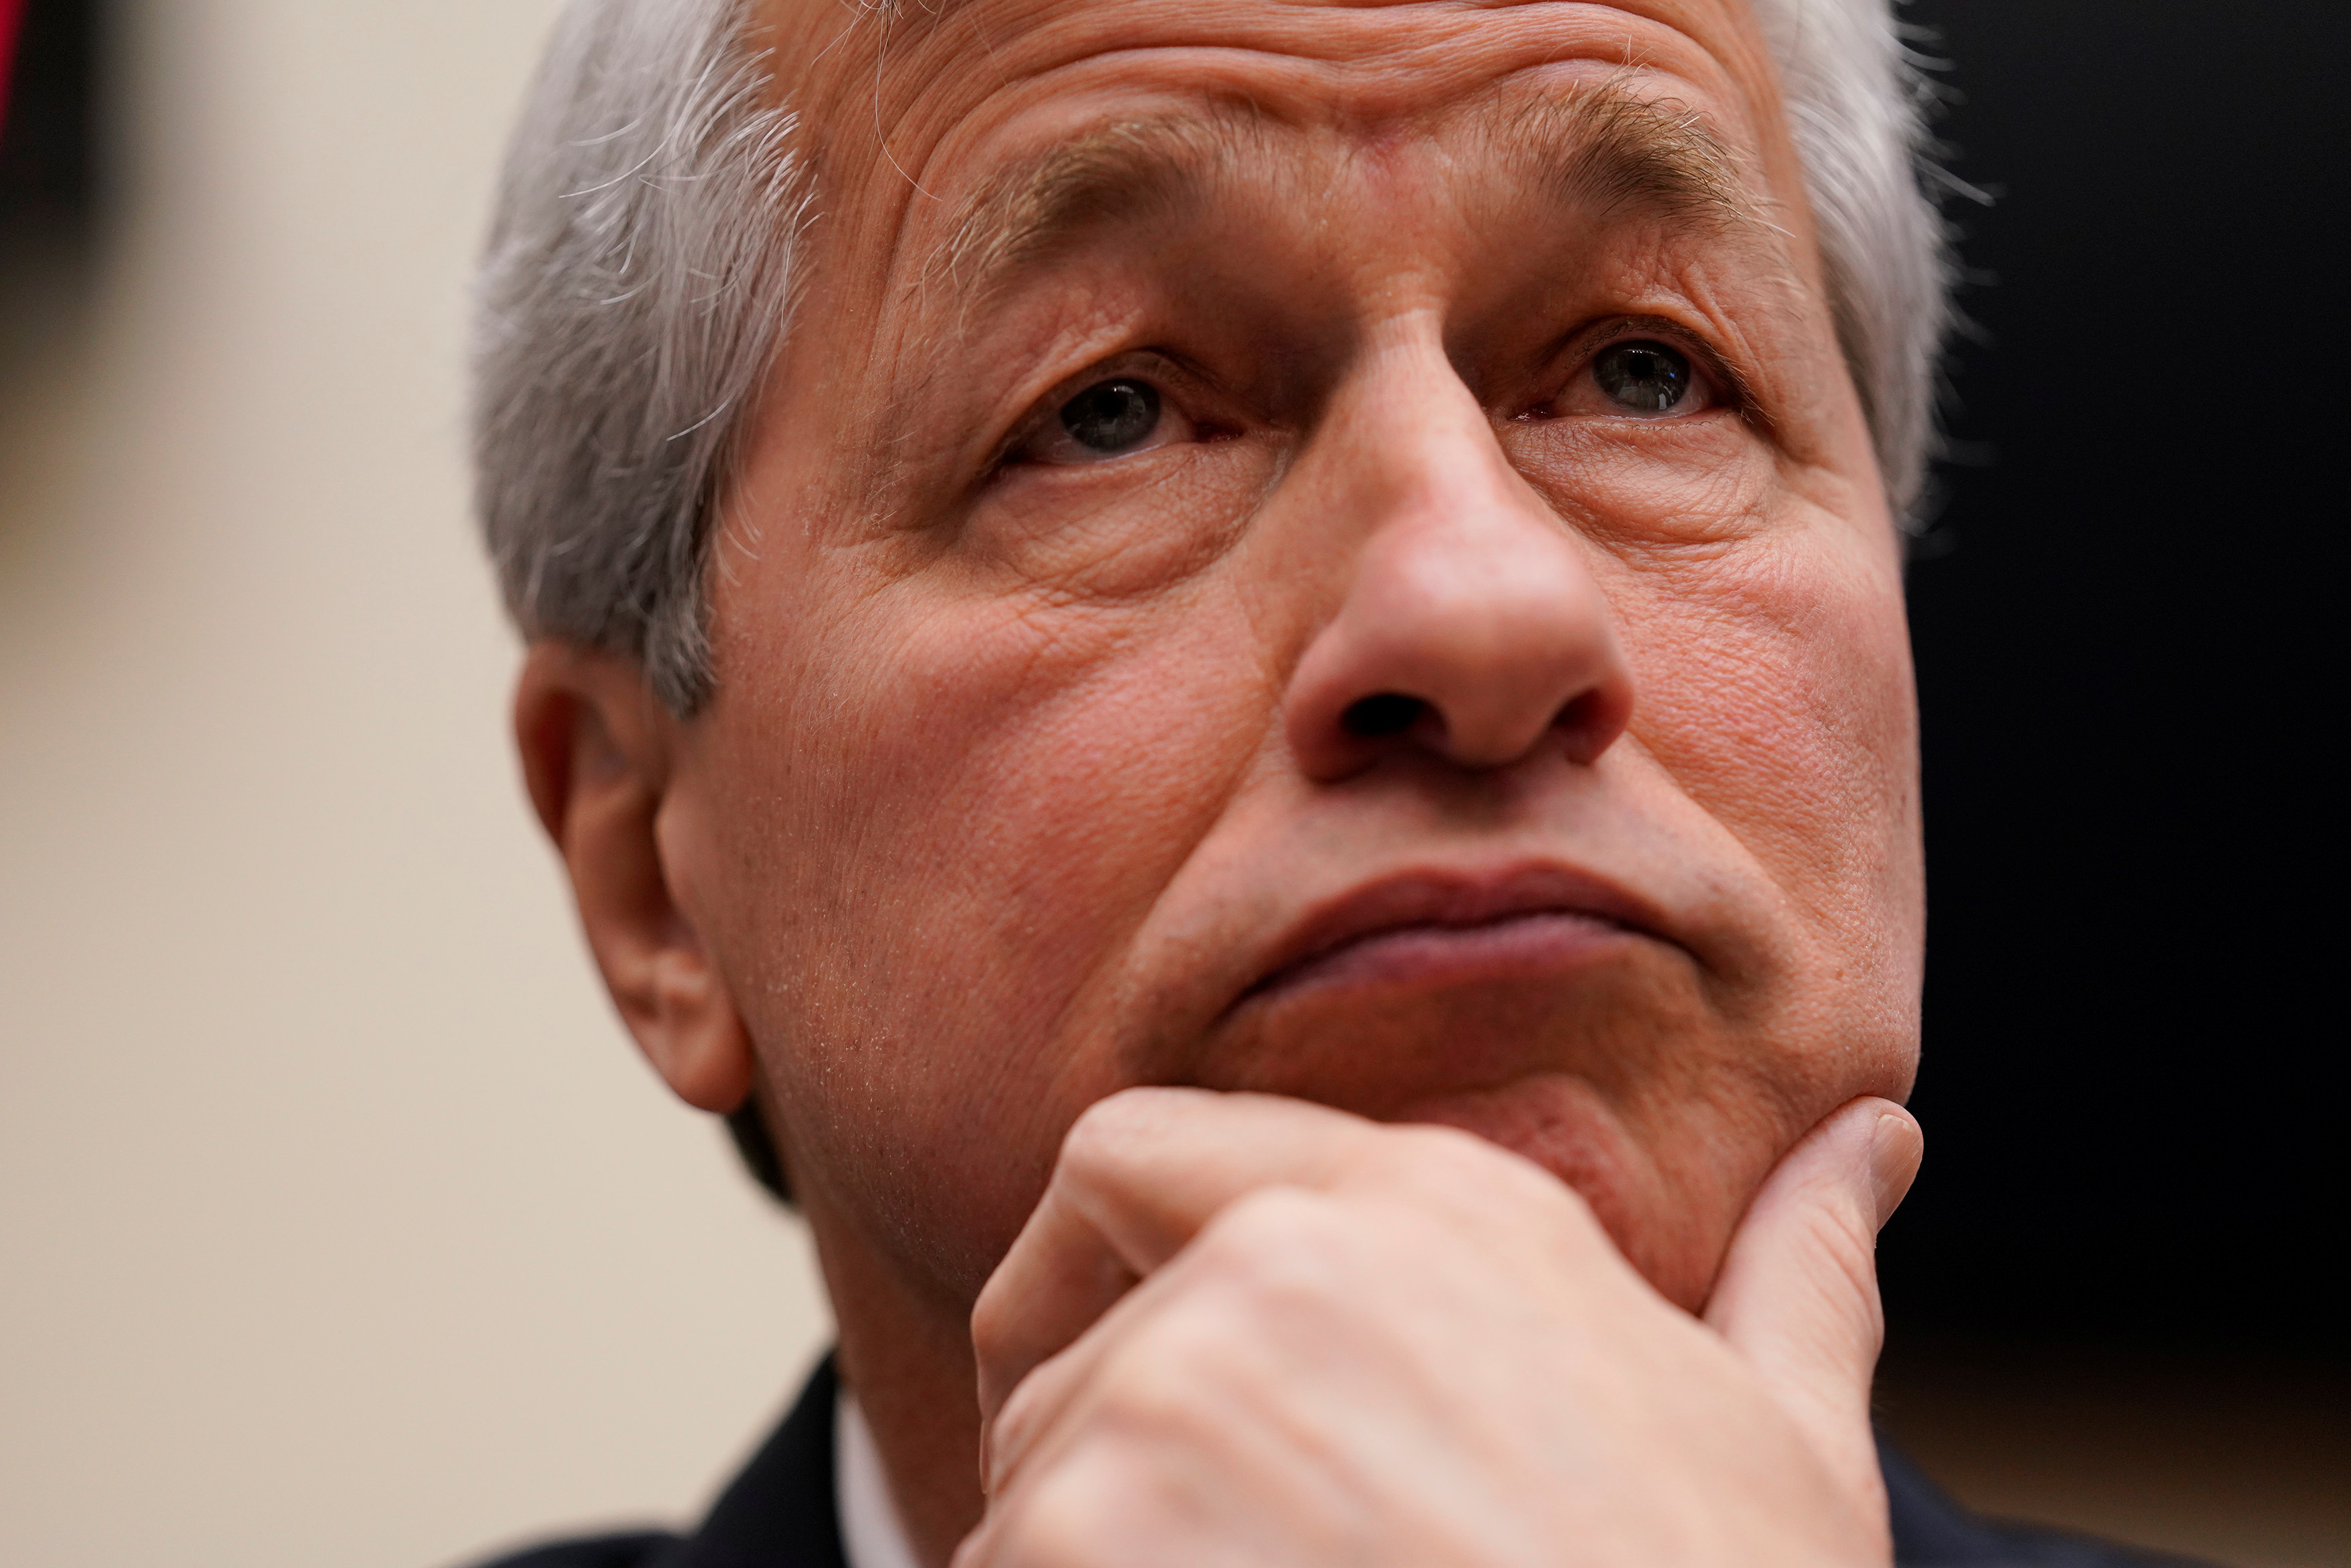 """Jamie Dimon, chairman & CEO of JP Morgan Chase & Co., arrives to testify before a House Financial Services Committee hearing on """"Holding Megabanks Accountable: A Review of Global Systemically Important Banks 10 Years After the Financial Crisis"""" on Capitol Hill in Washington, U.S., April 10, 2019. REUTERS/Aaron P. Bernstein"""